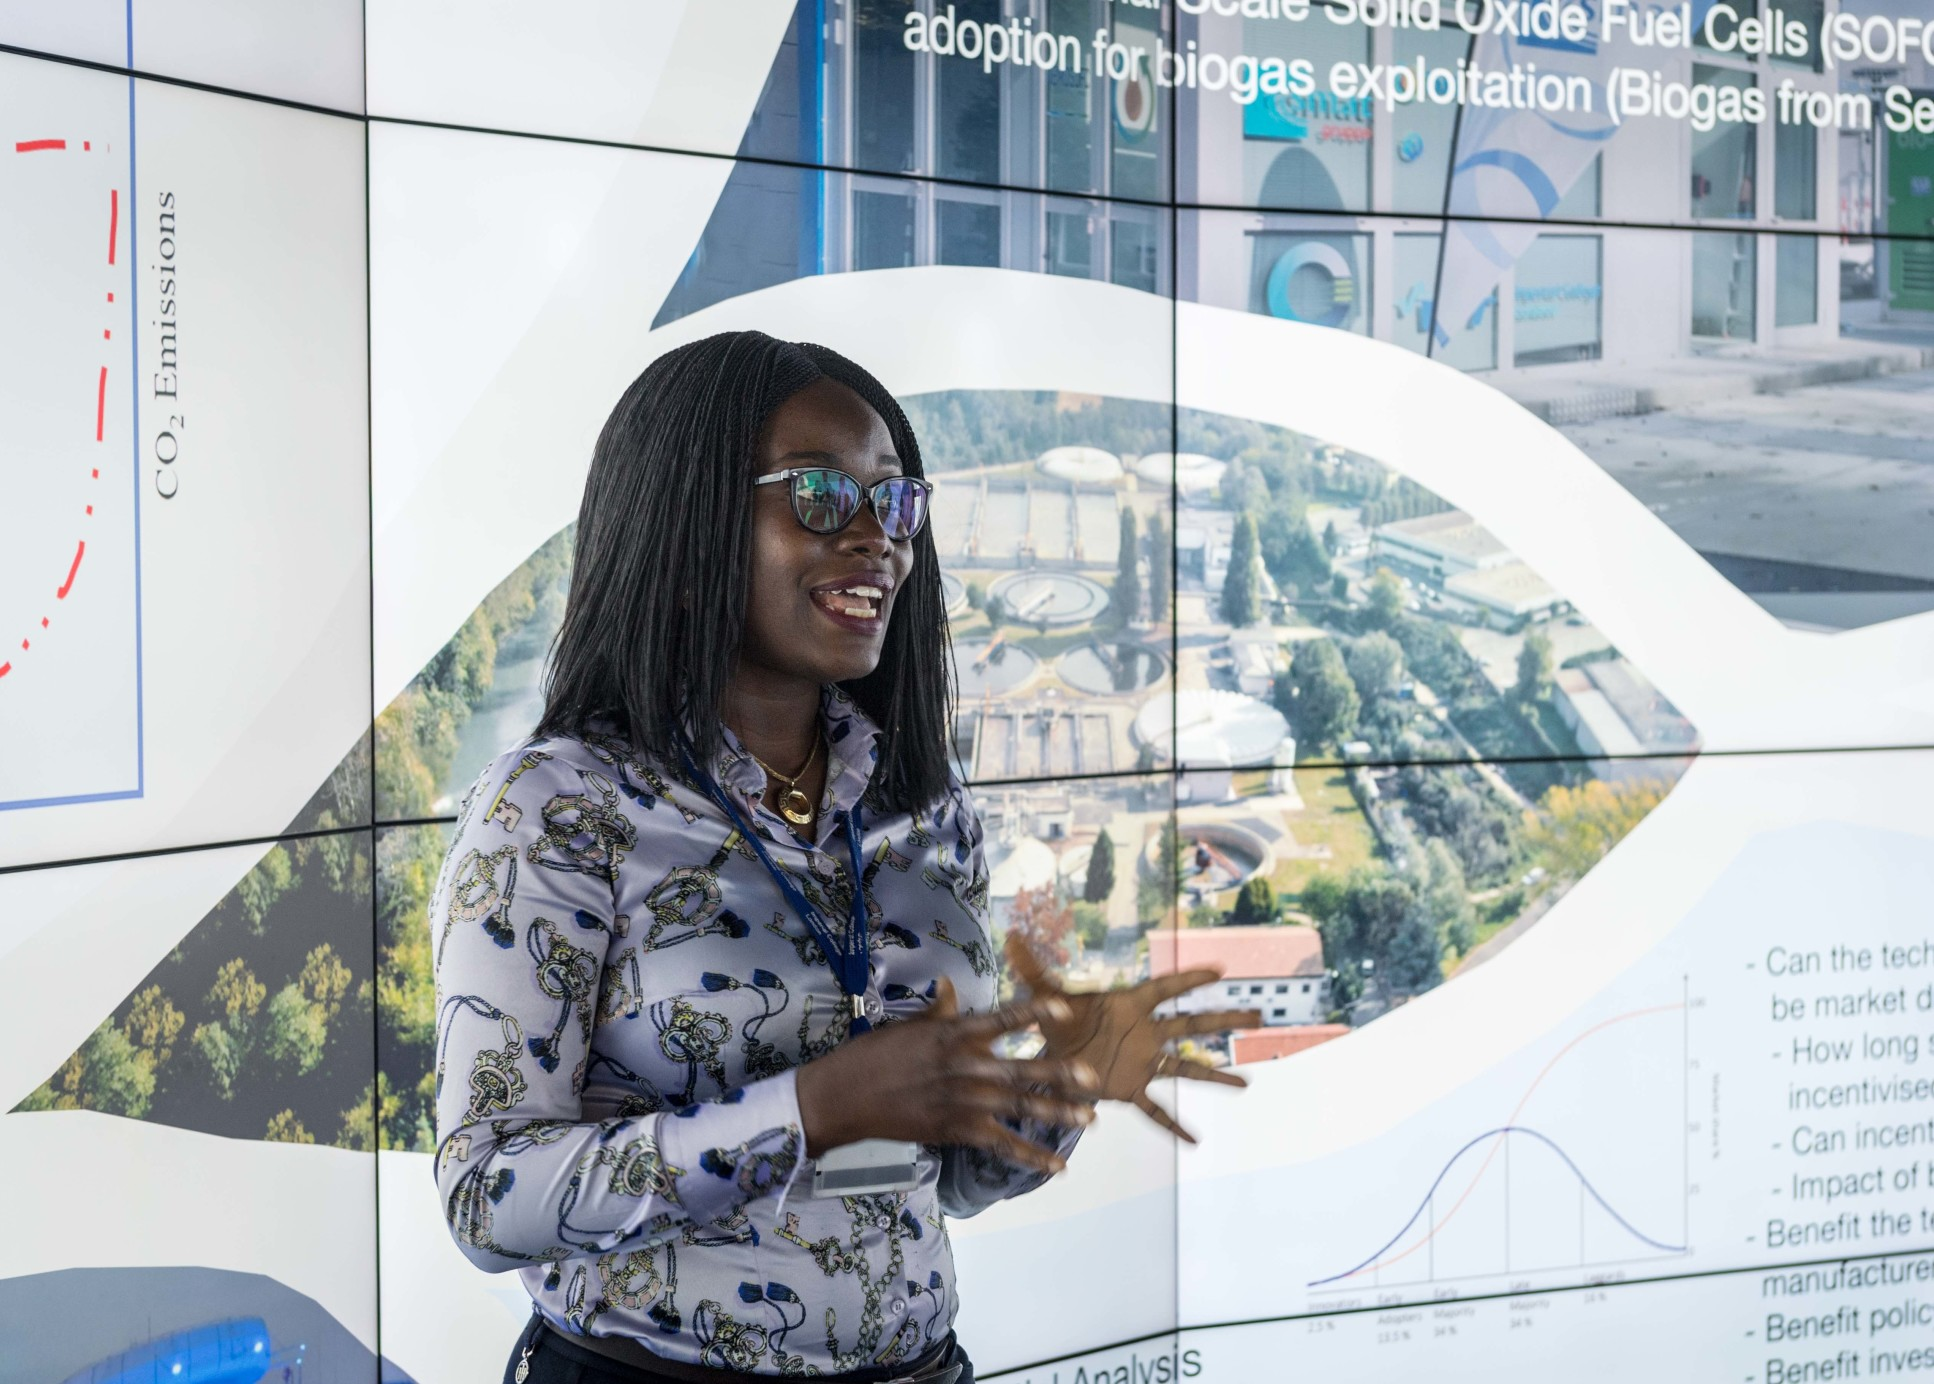 Gbemi Oluleye, a black woman in her mid thirties, addresses an audience, she stands in front of a video screen showing an aerial photo of an industrial plant. Gbemi wears a light blouse and has dark thinly braided hair and glasses.